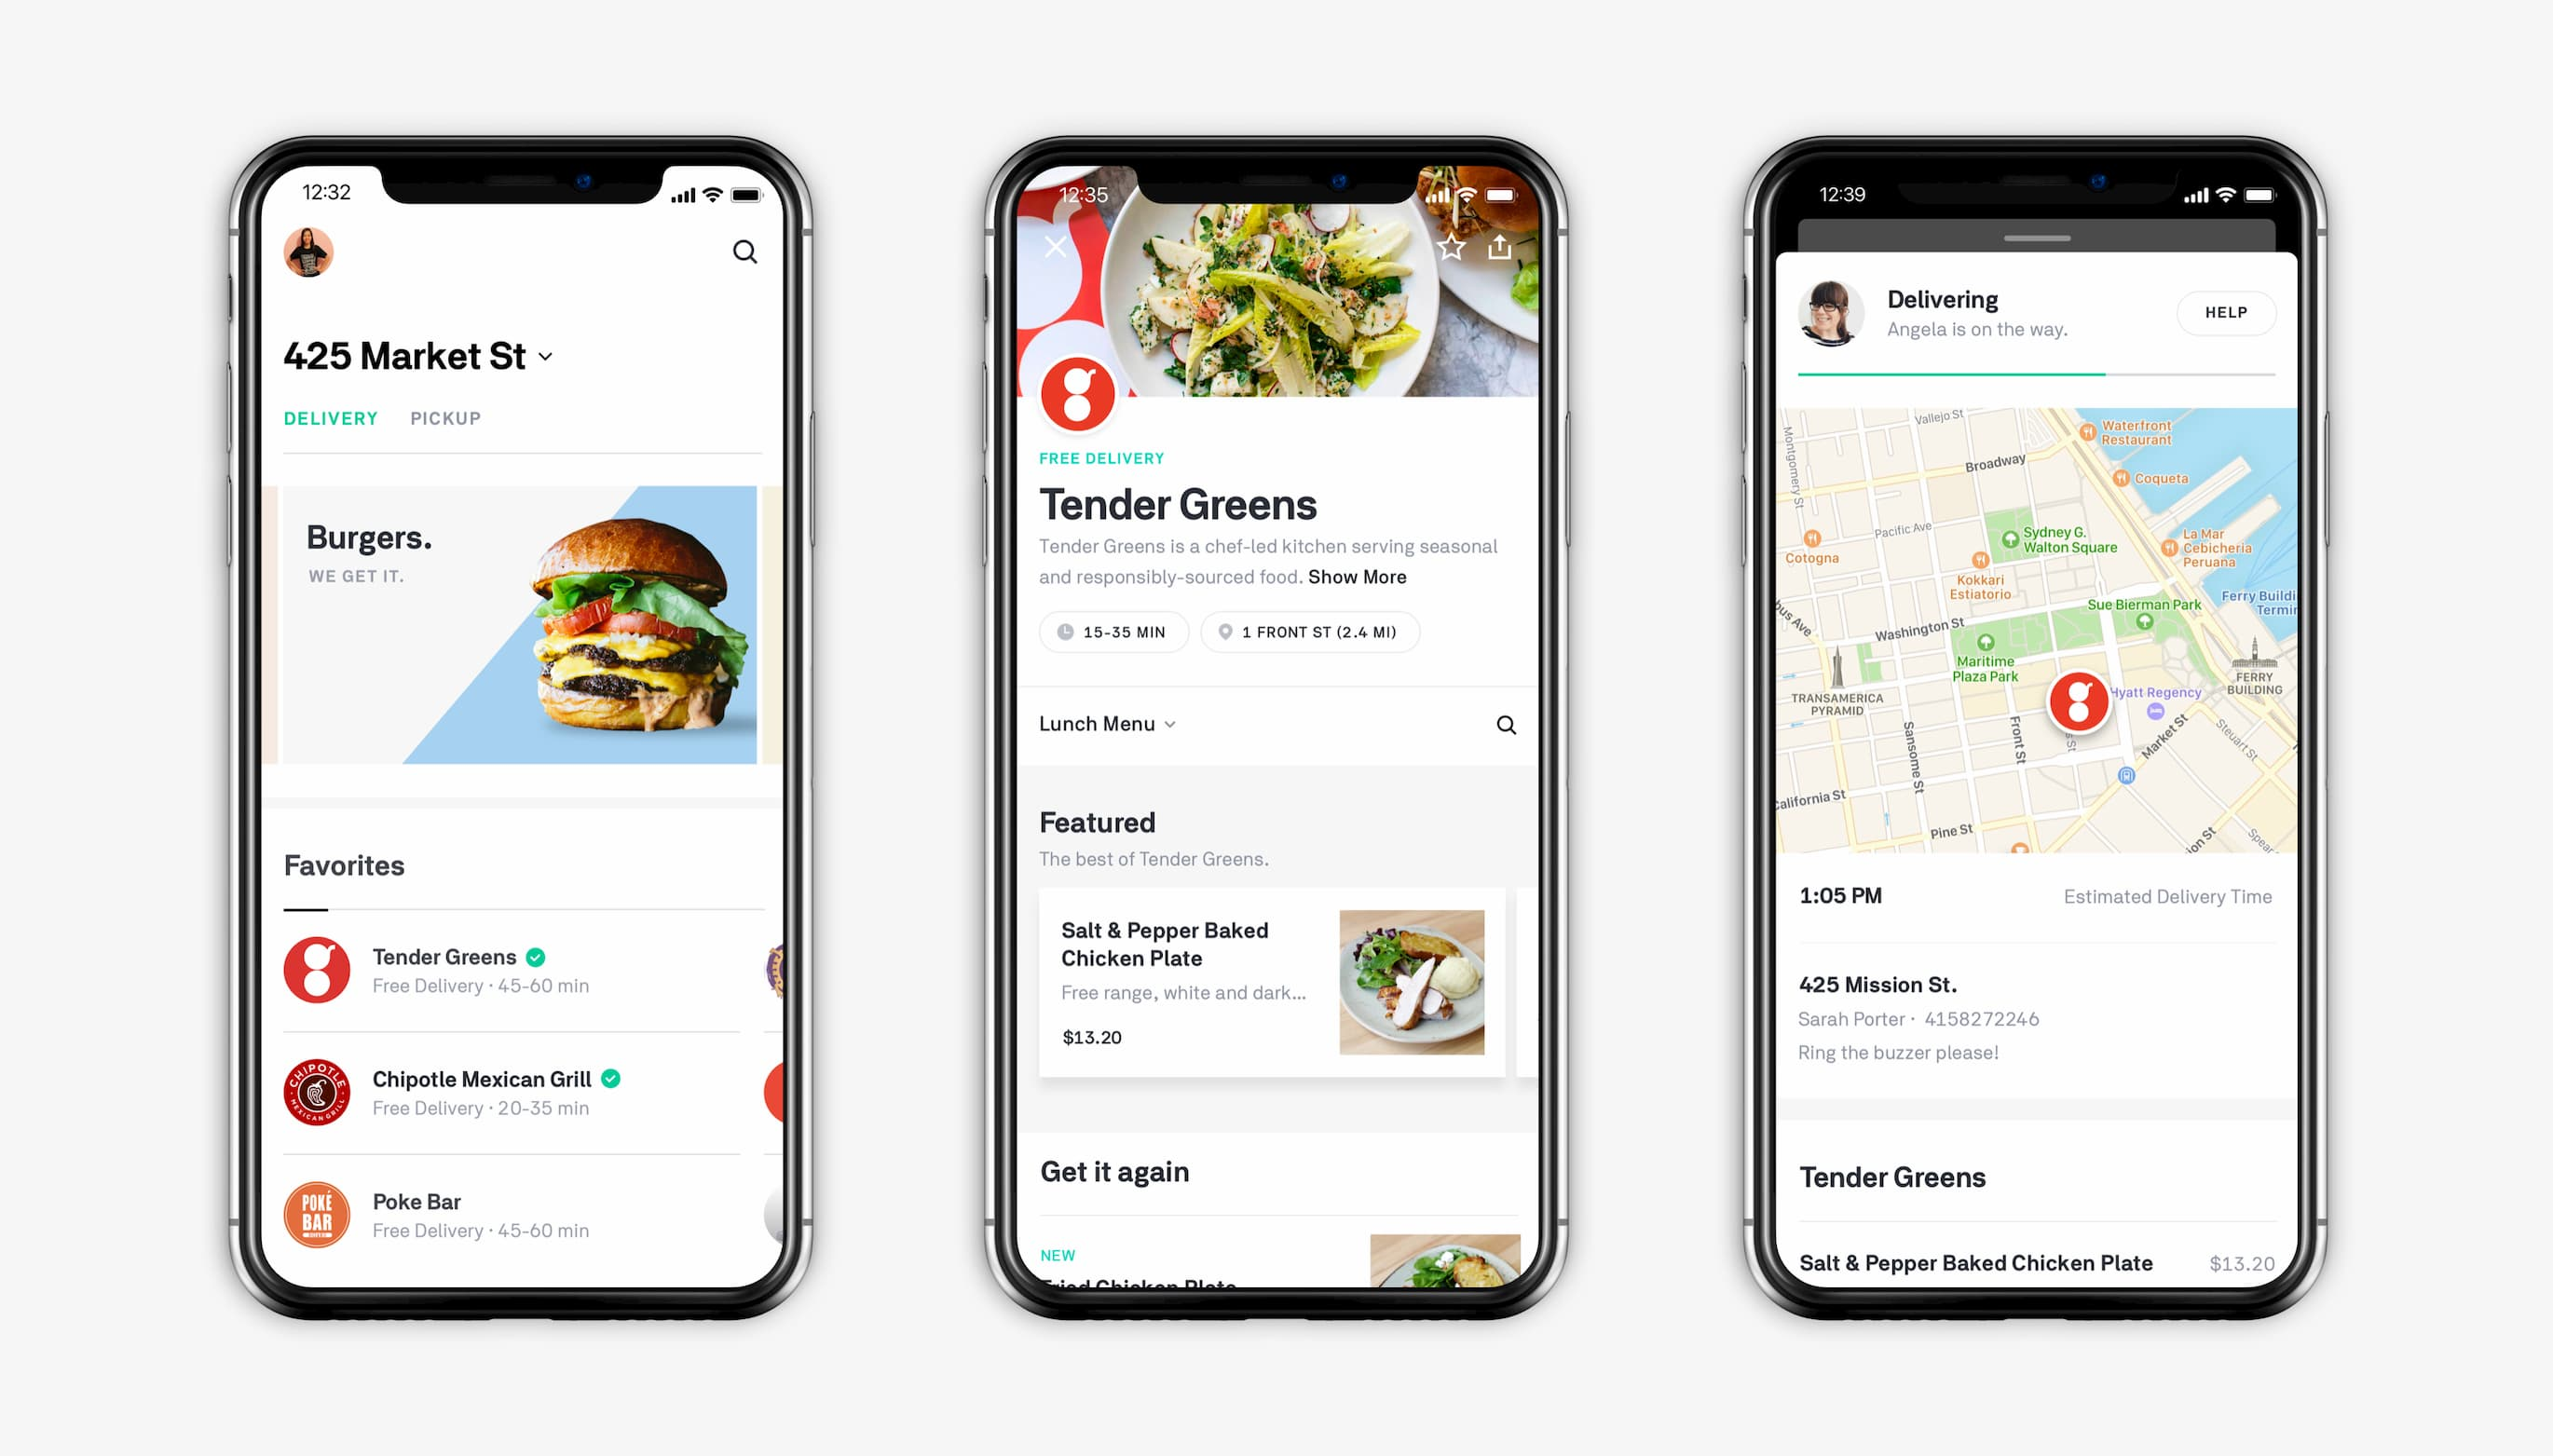 The workflow for ordering food on Postmates.